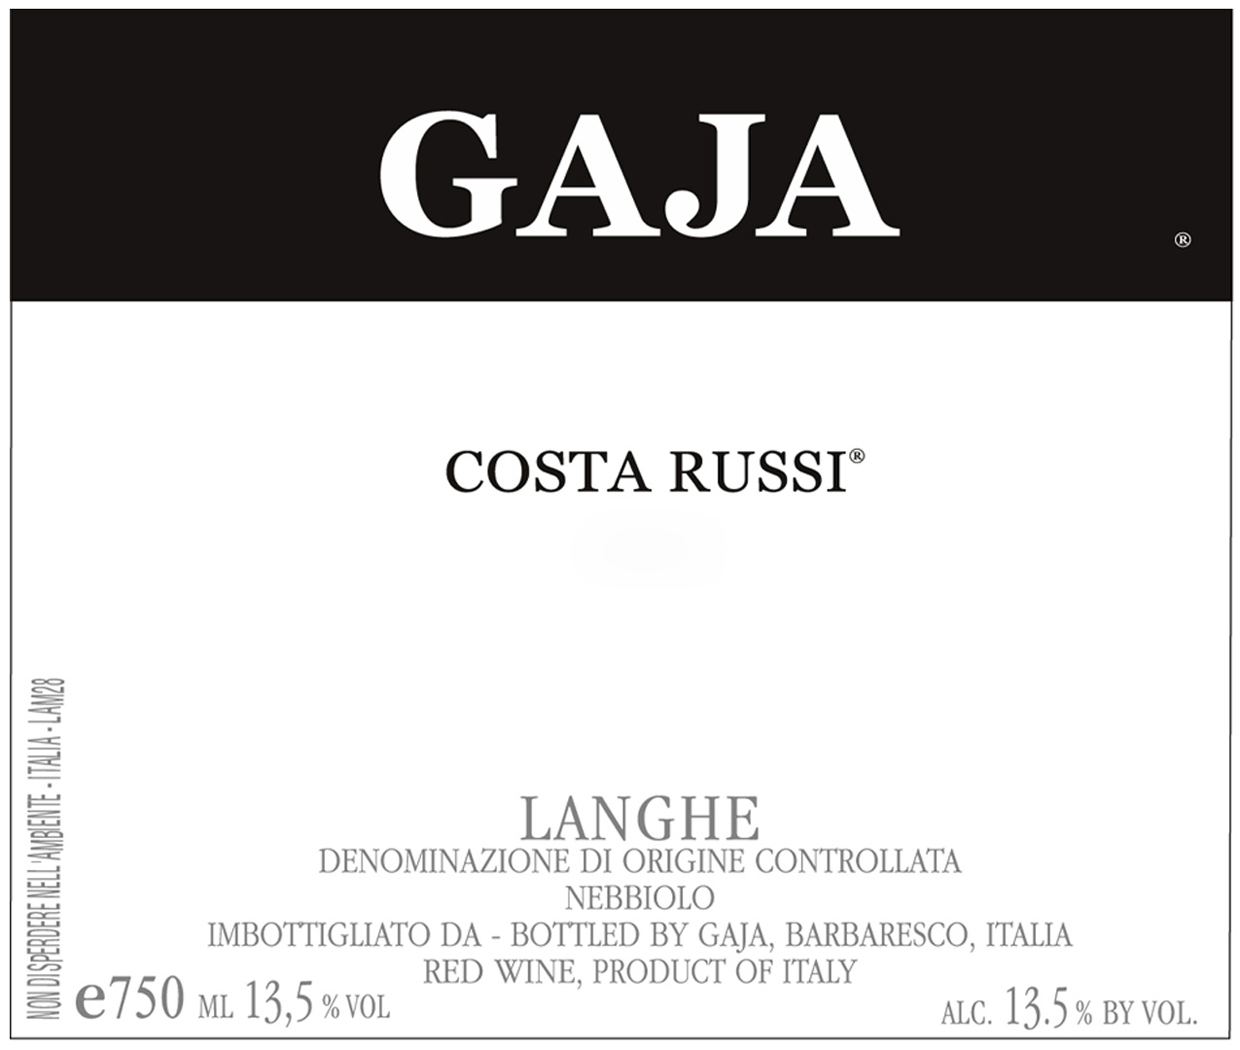 Gaja Barbaresco Costa Russi